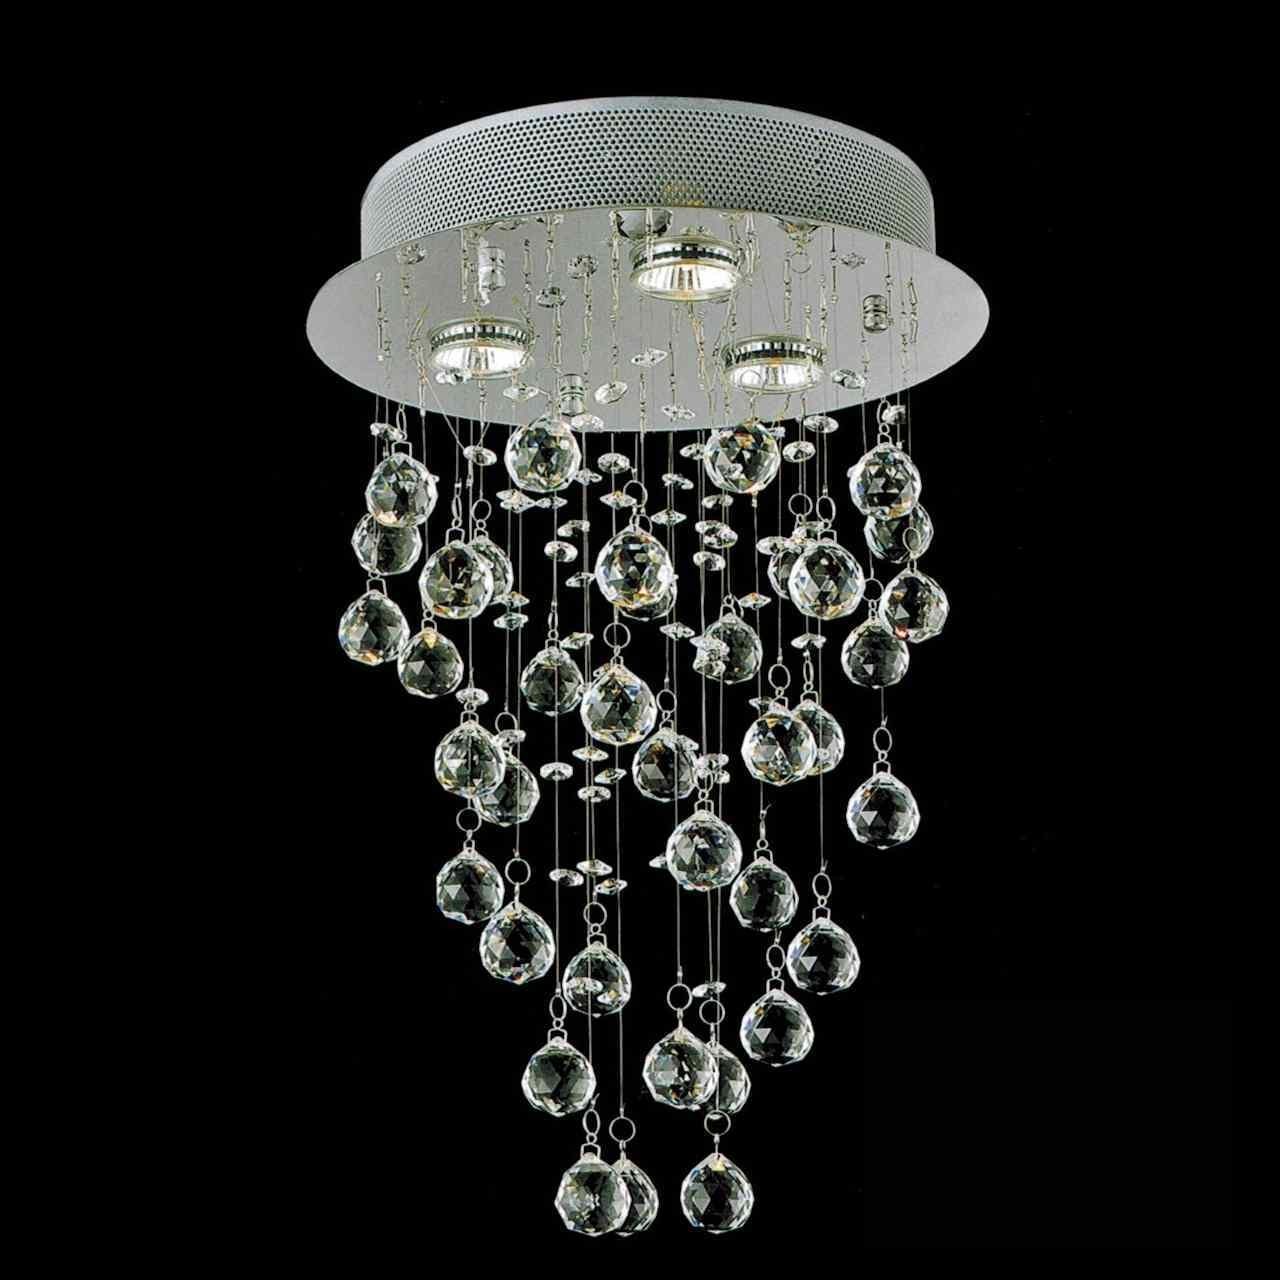 Brizzo Lighting Stores 18 Raindrops Modern Foyer Crystal Round Pertaining To Mirror Chandelier (View 4 of 15)